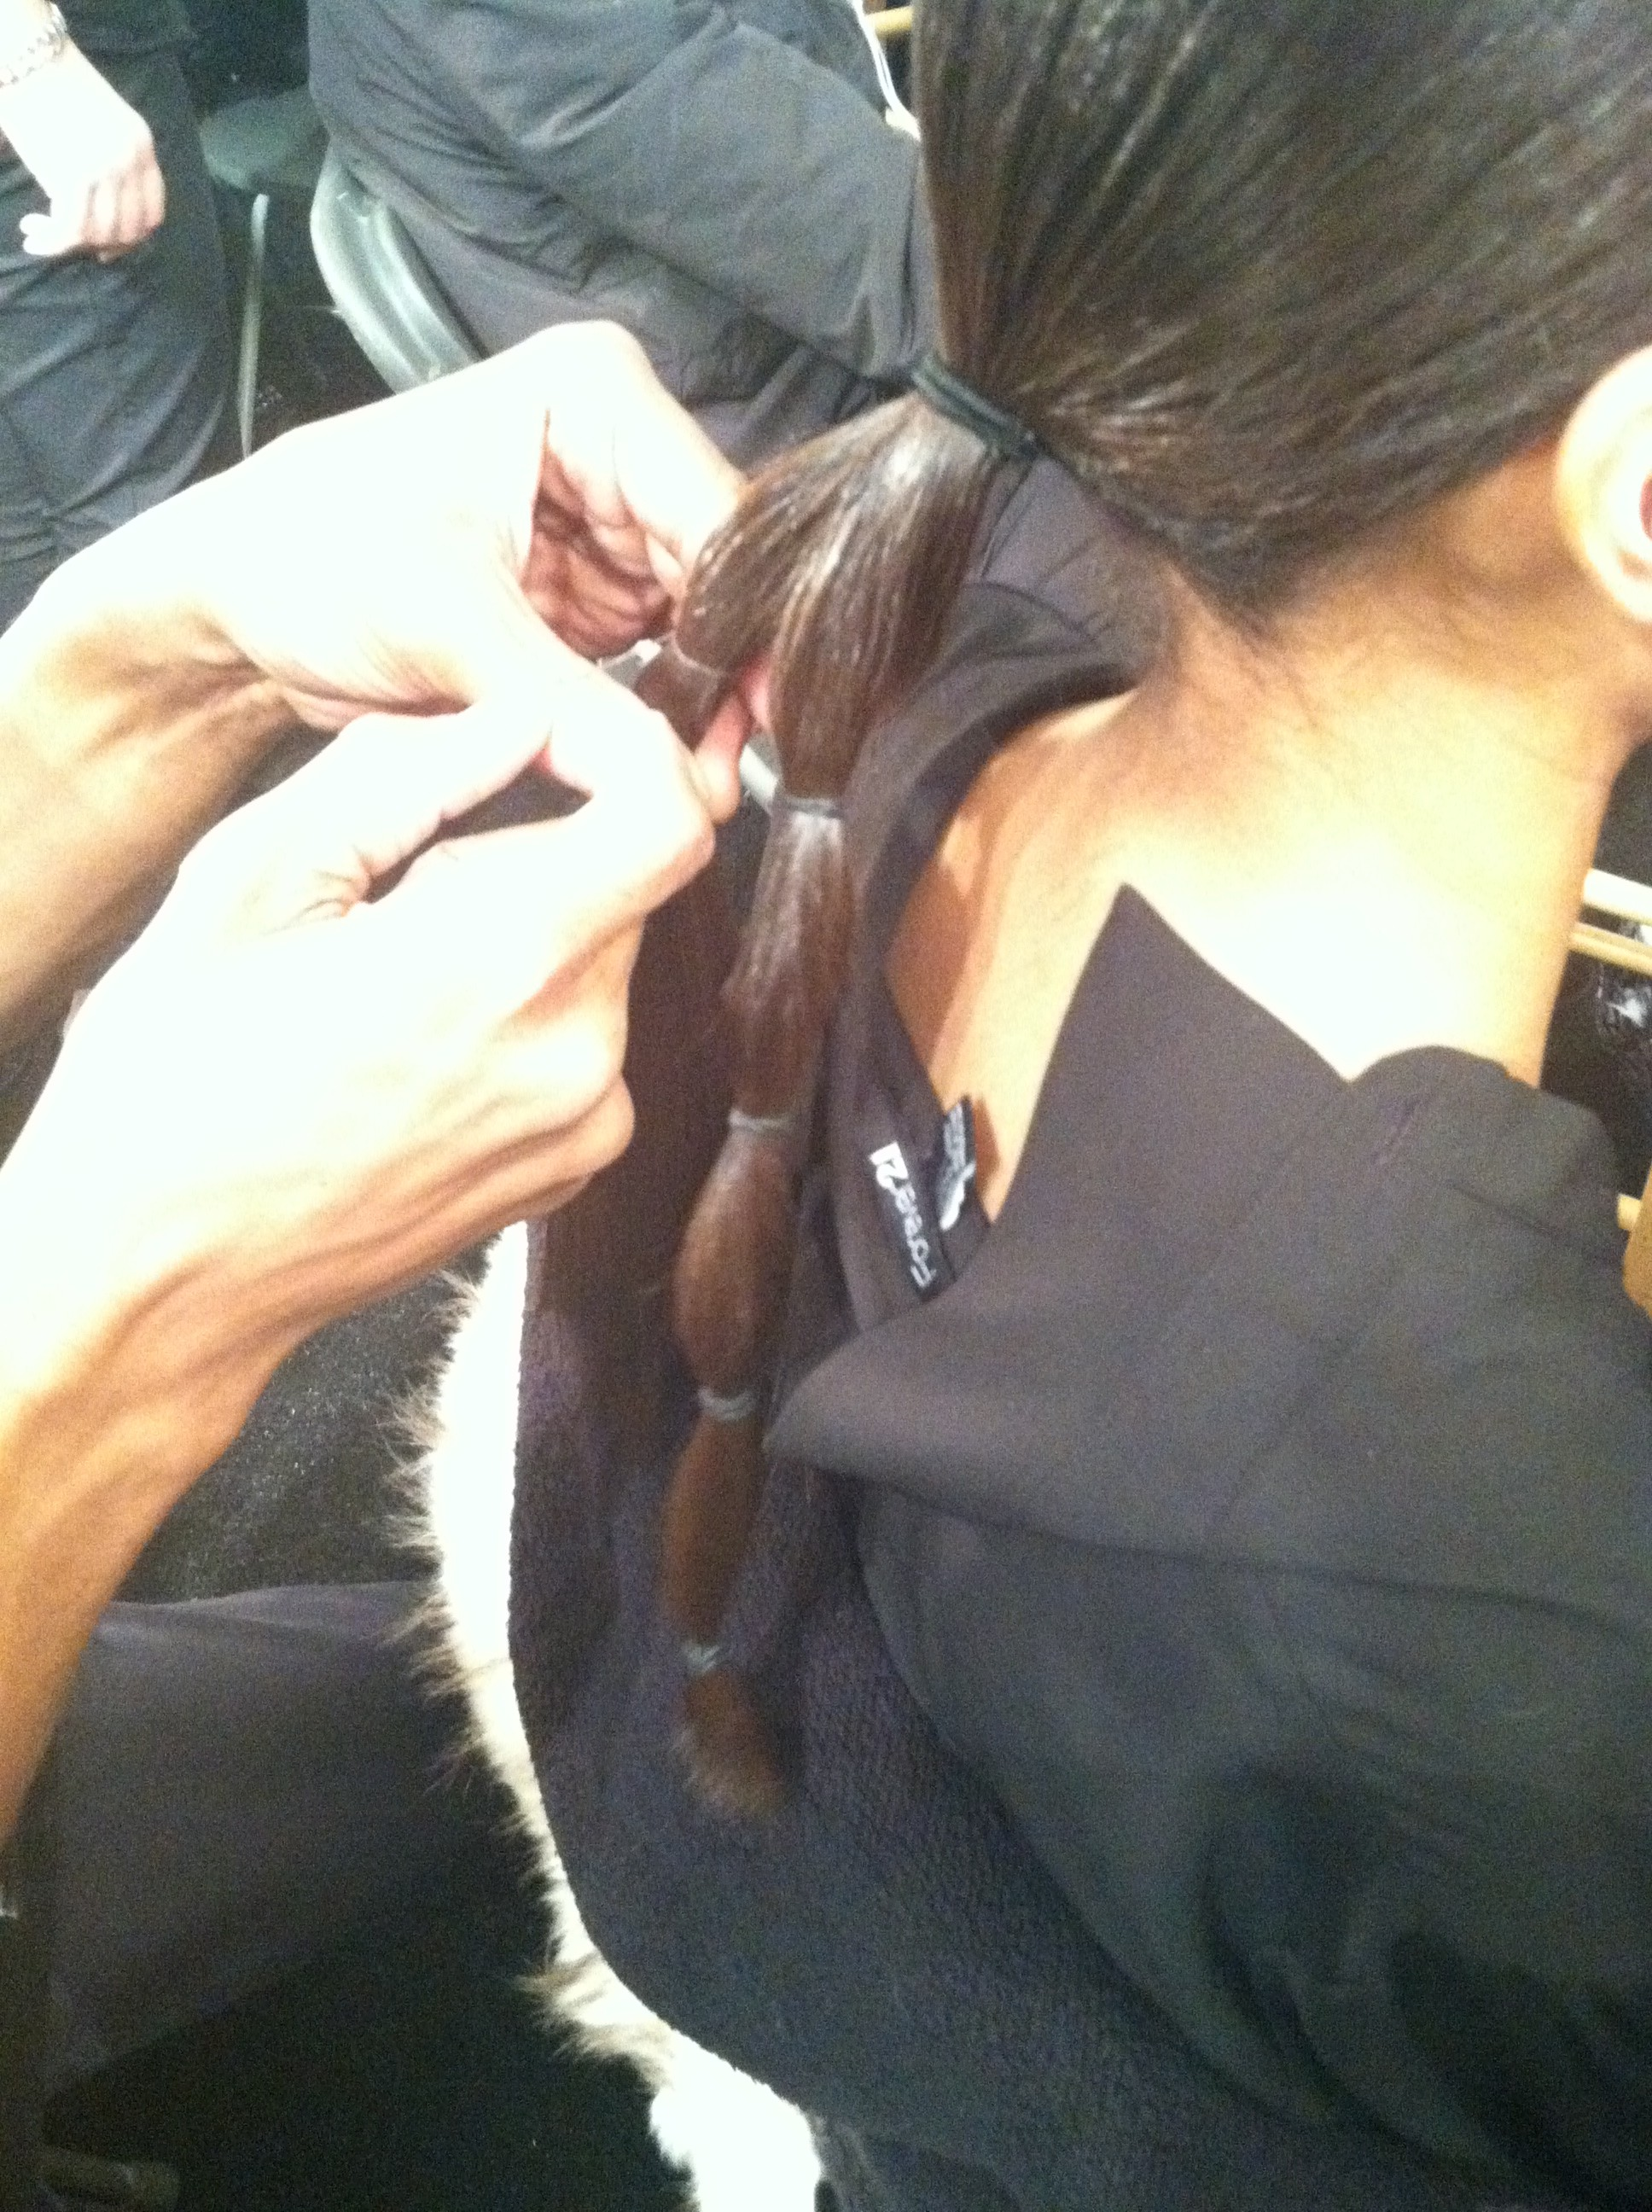 The low ponytail is sectioned into honeycombs with elastics